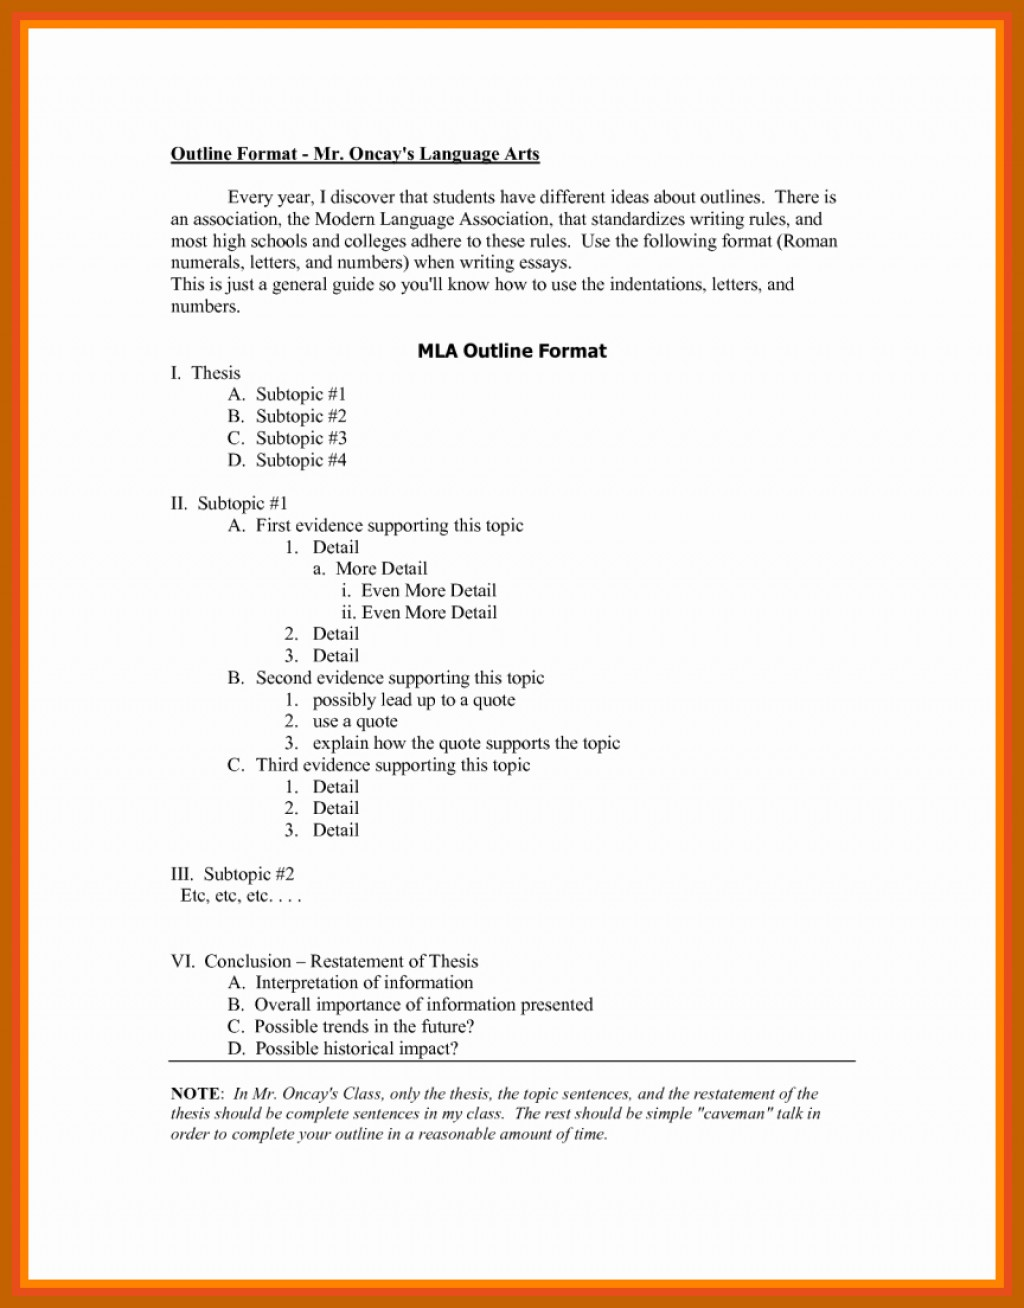 006 Mla Style Research Paper Format Best Of Outline In How To Don For Amazing Do An A Large